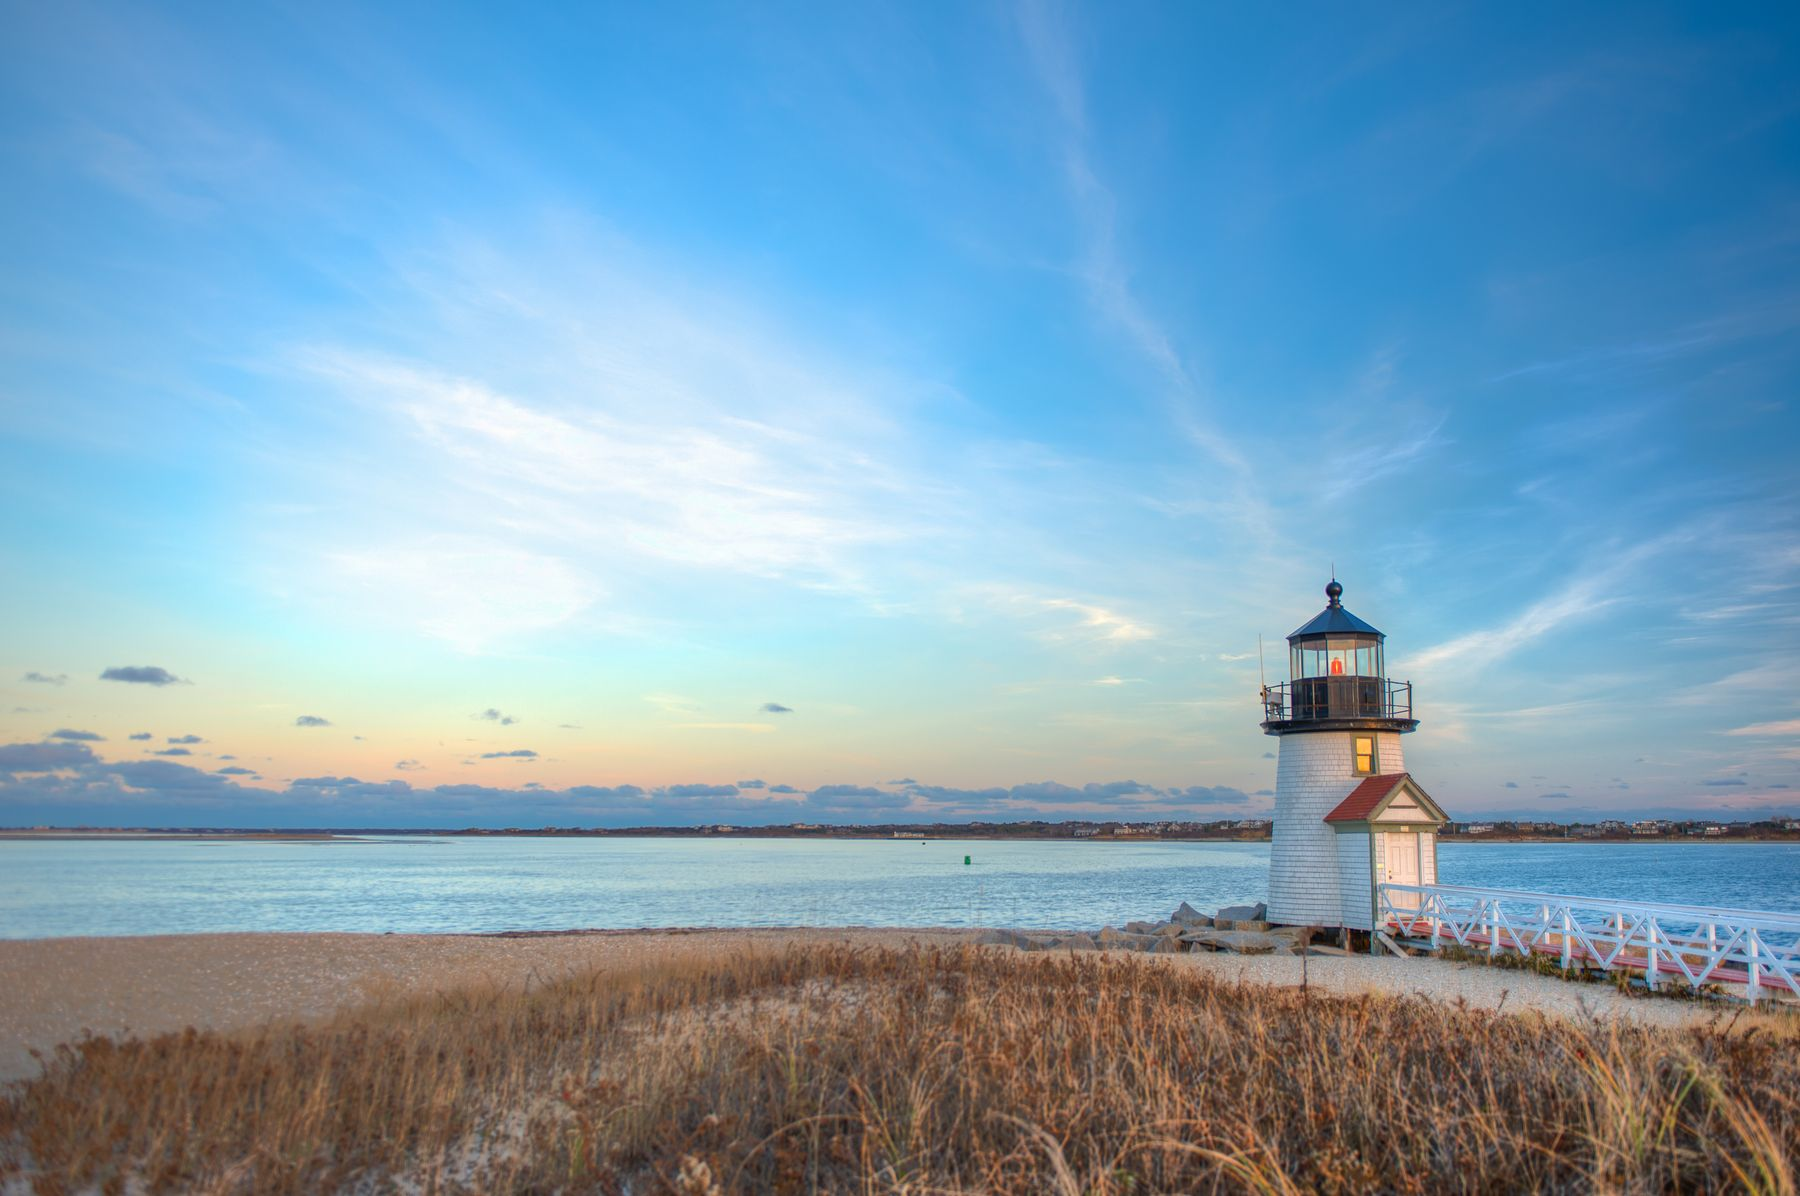 Lone lighthouse standing on the beach on Cape Cod